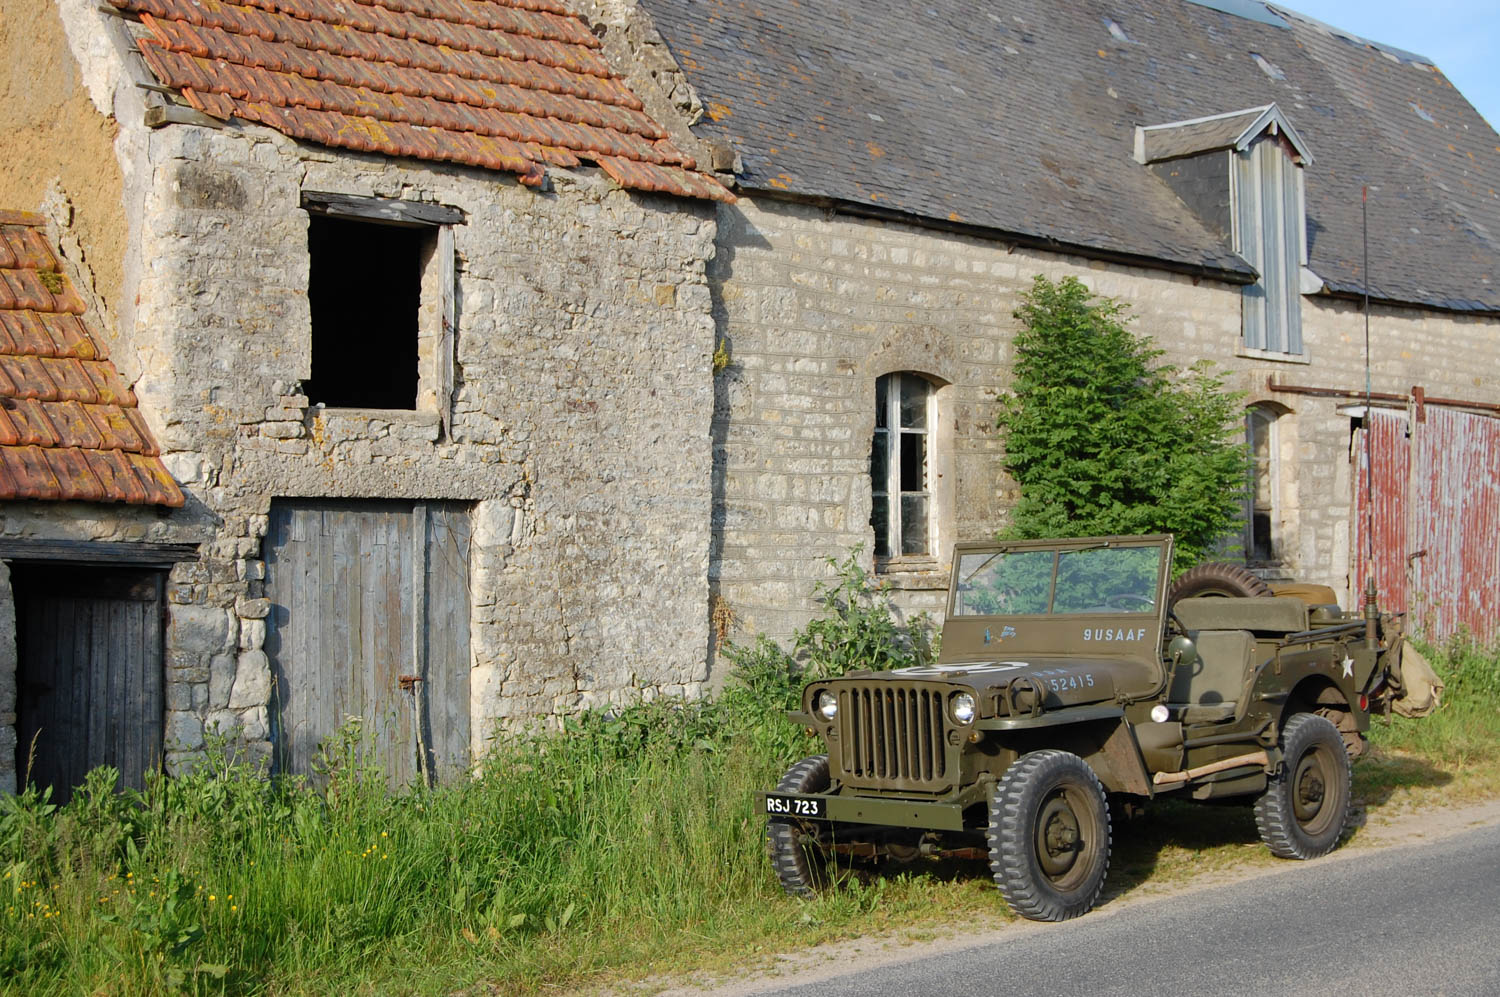 Aaron Robinson's 1944 Ford GPW jeep in front of a farm house near Ste Marie du Mont, where 101st Airborne paratroopers fought the first battles of D-Day in the early hours of June 6, 1944.